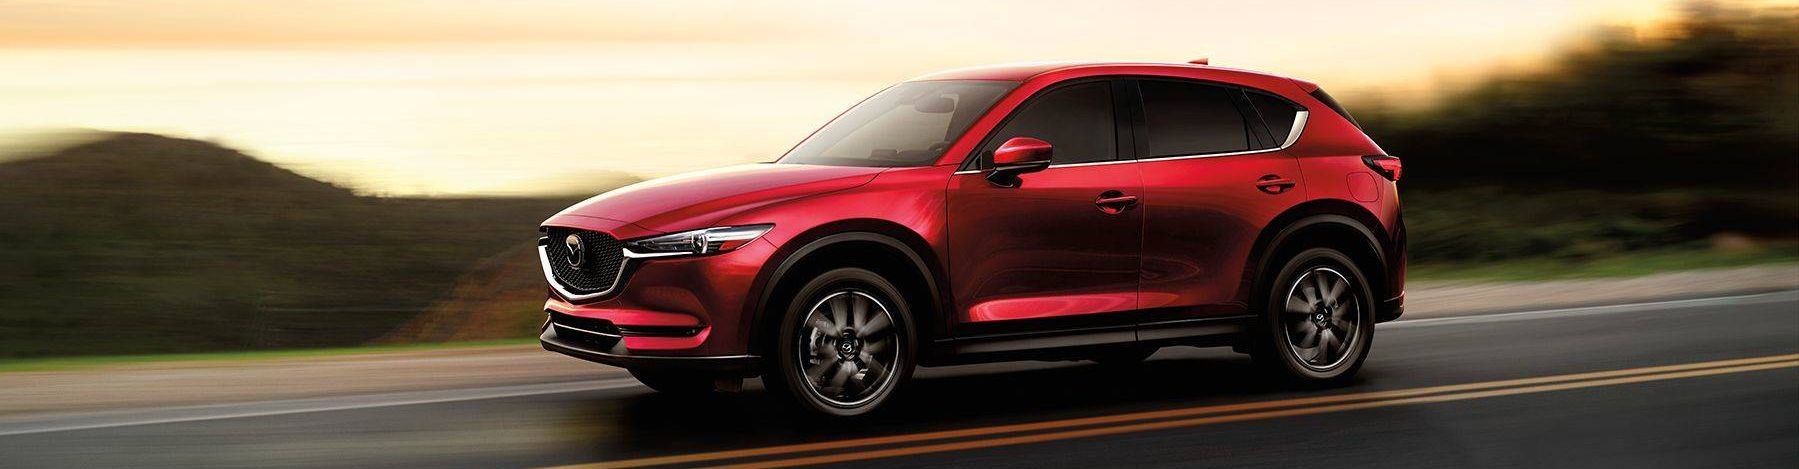 2018 Mazda CX-5 Financing near Pearland, TX